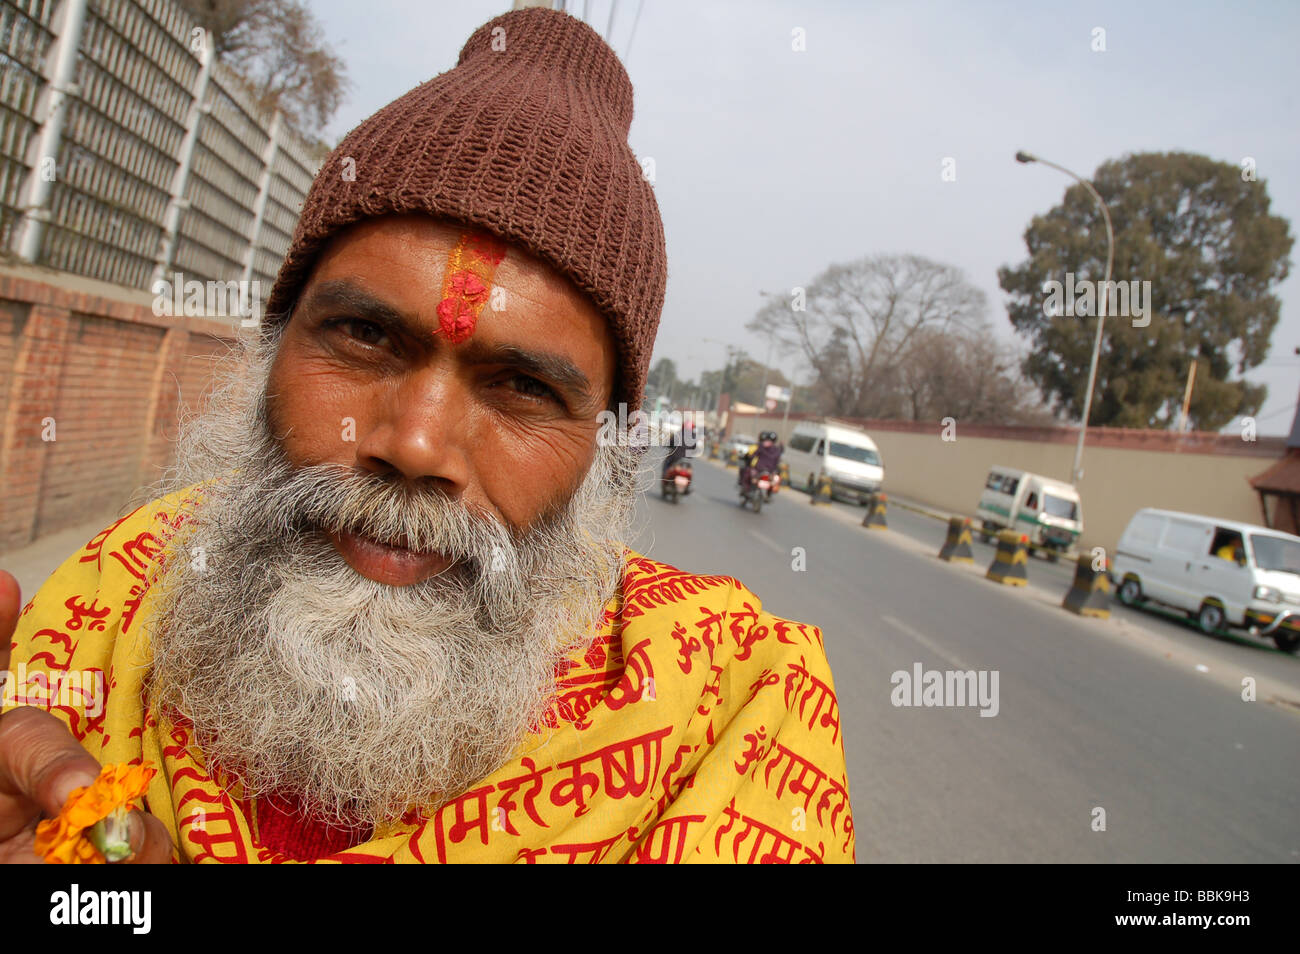 Portrait of a sadhu (holy man) in Kathmandu, NEPAL - Stock Image